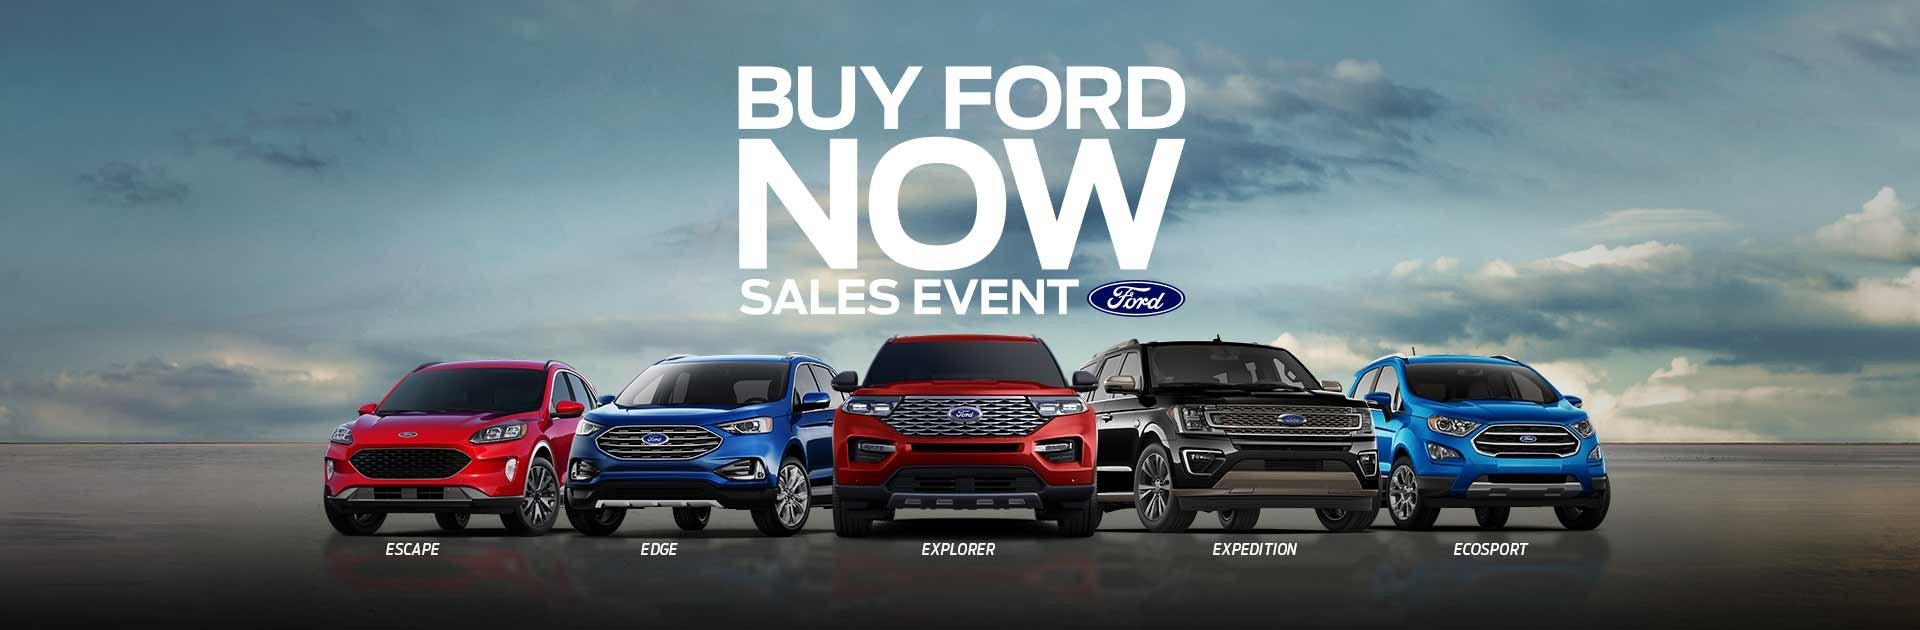 Ford Buy Now 4-2021